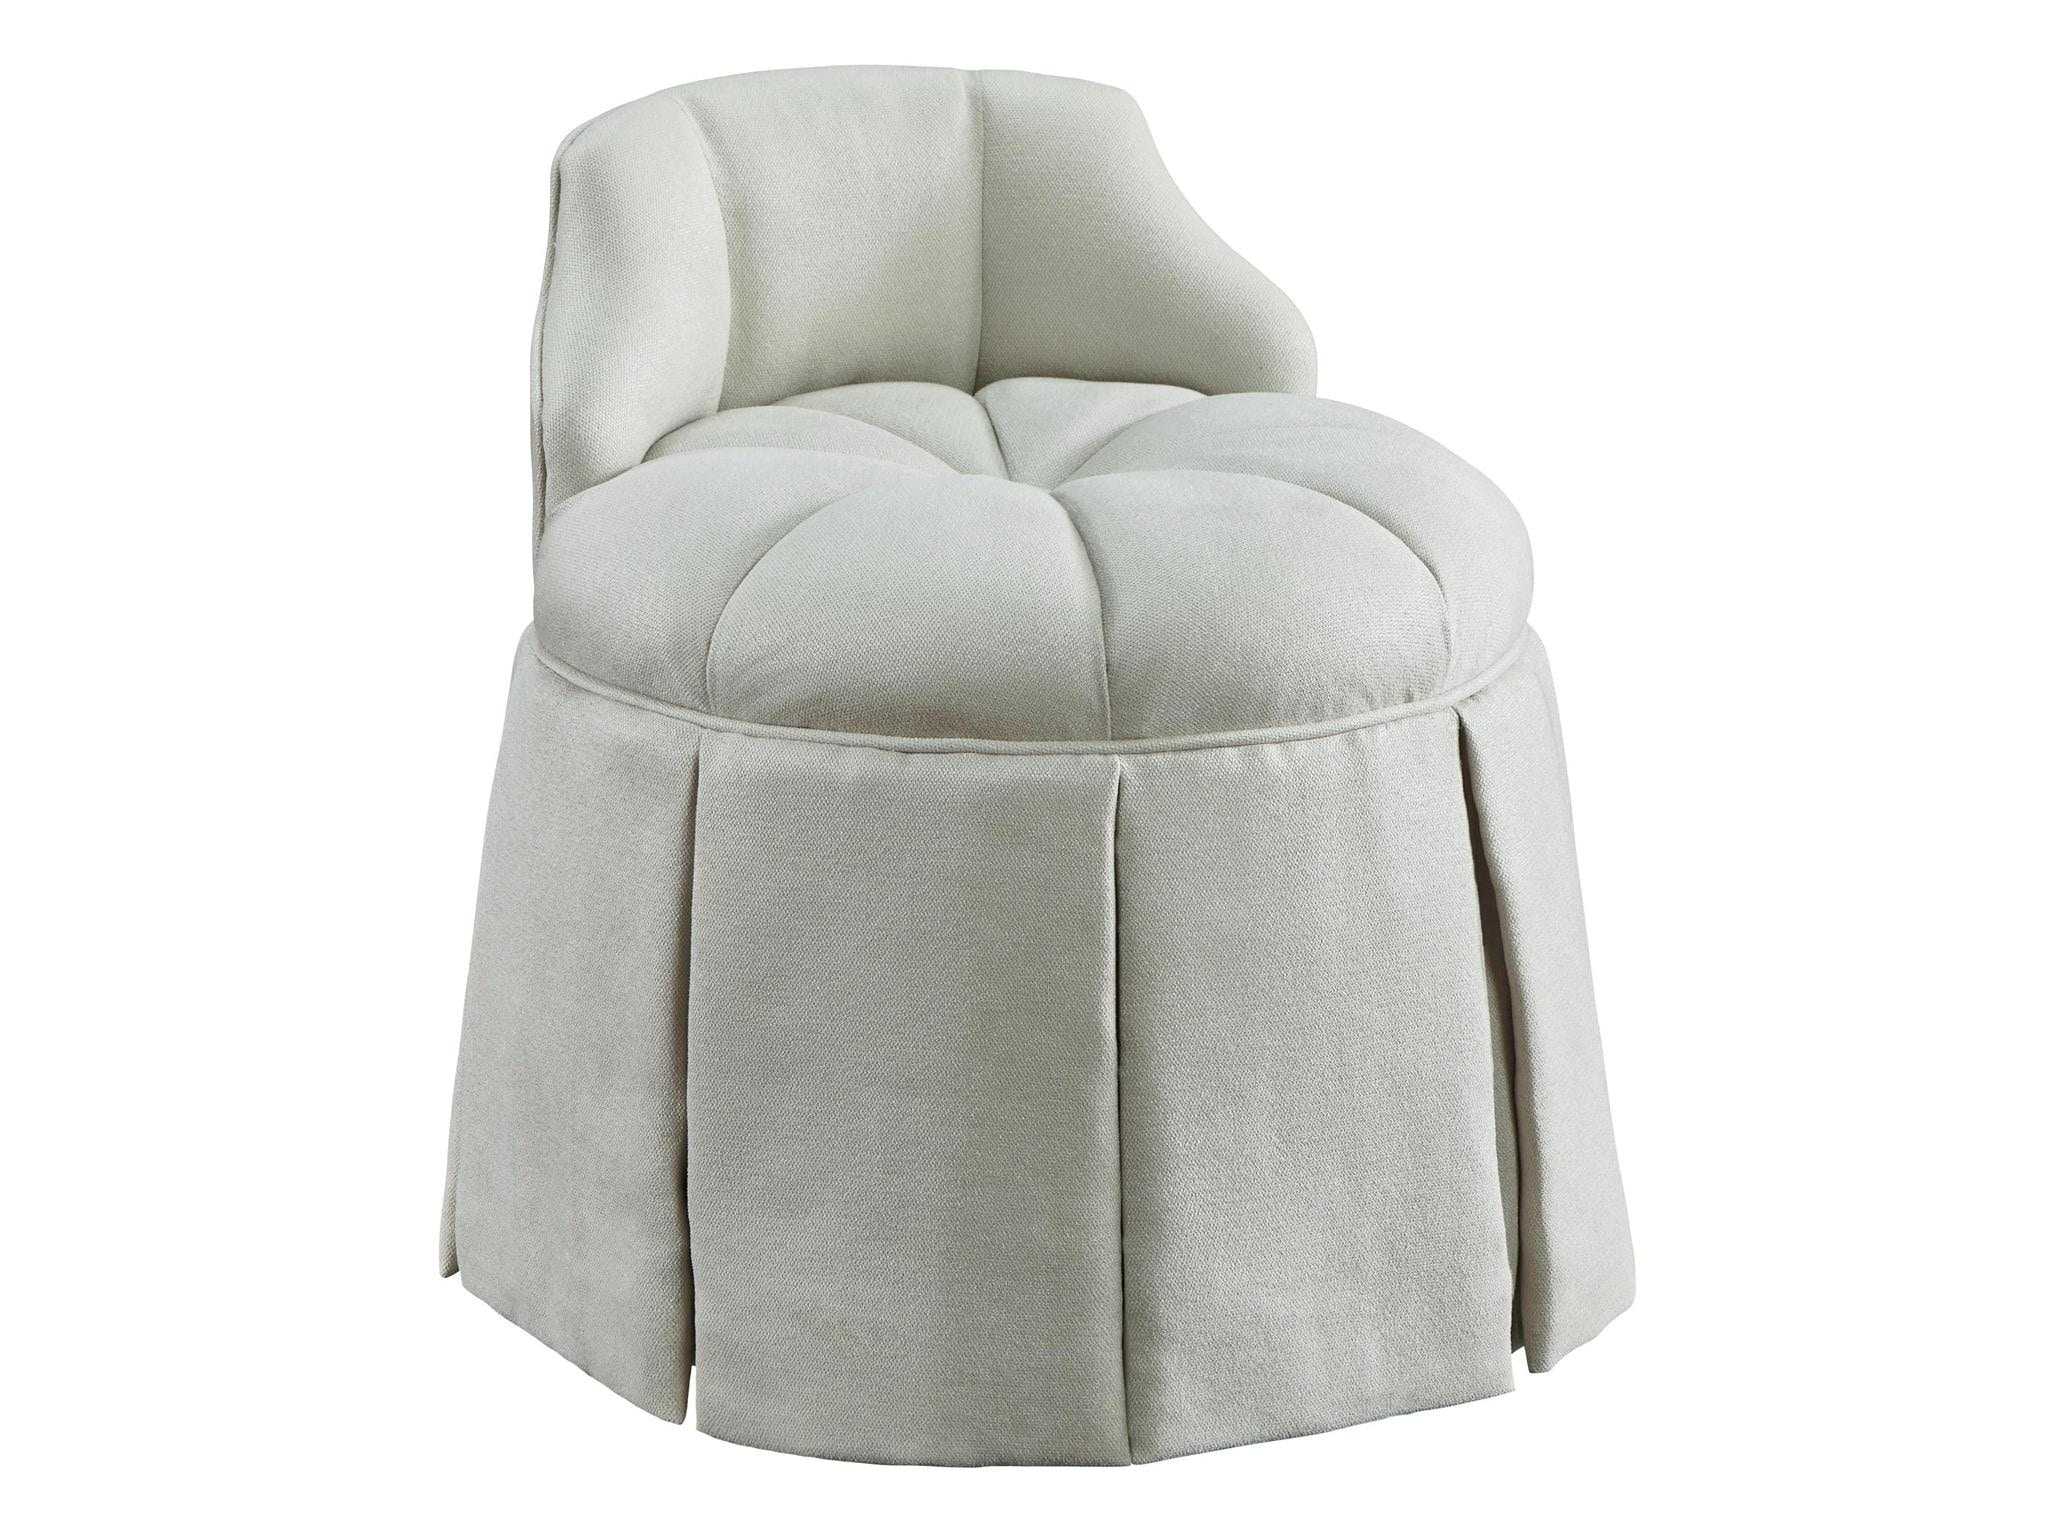 Fine Furniture Design Chloe Vanity Stool 1580 502